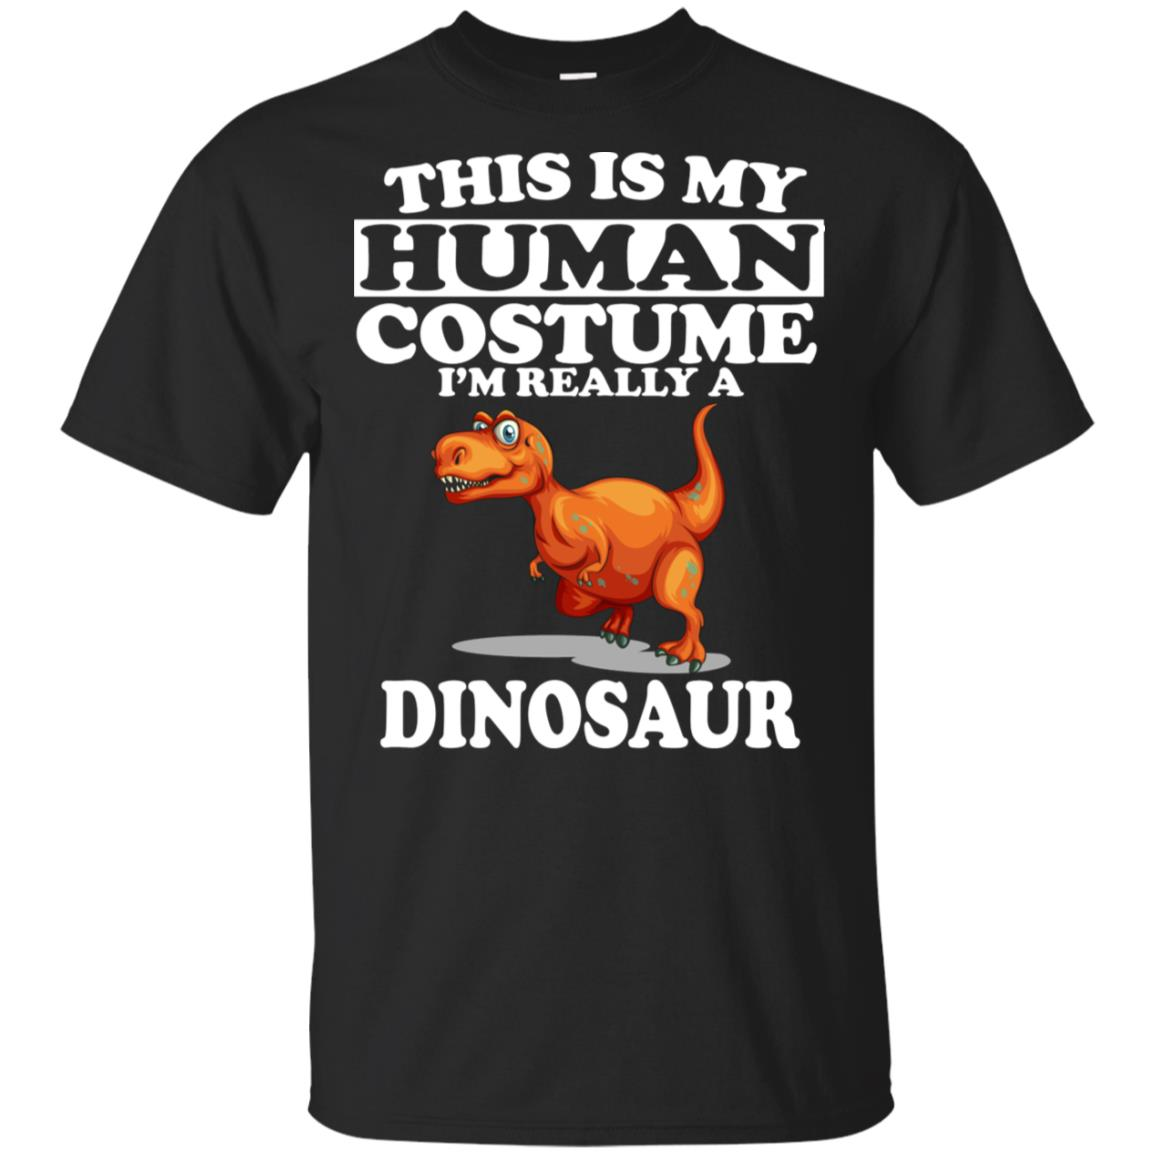 This Is My Human Costume I'm Really A Dinosaur Unisex Short Sleeve